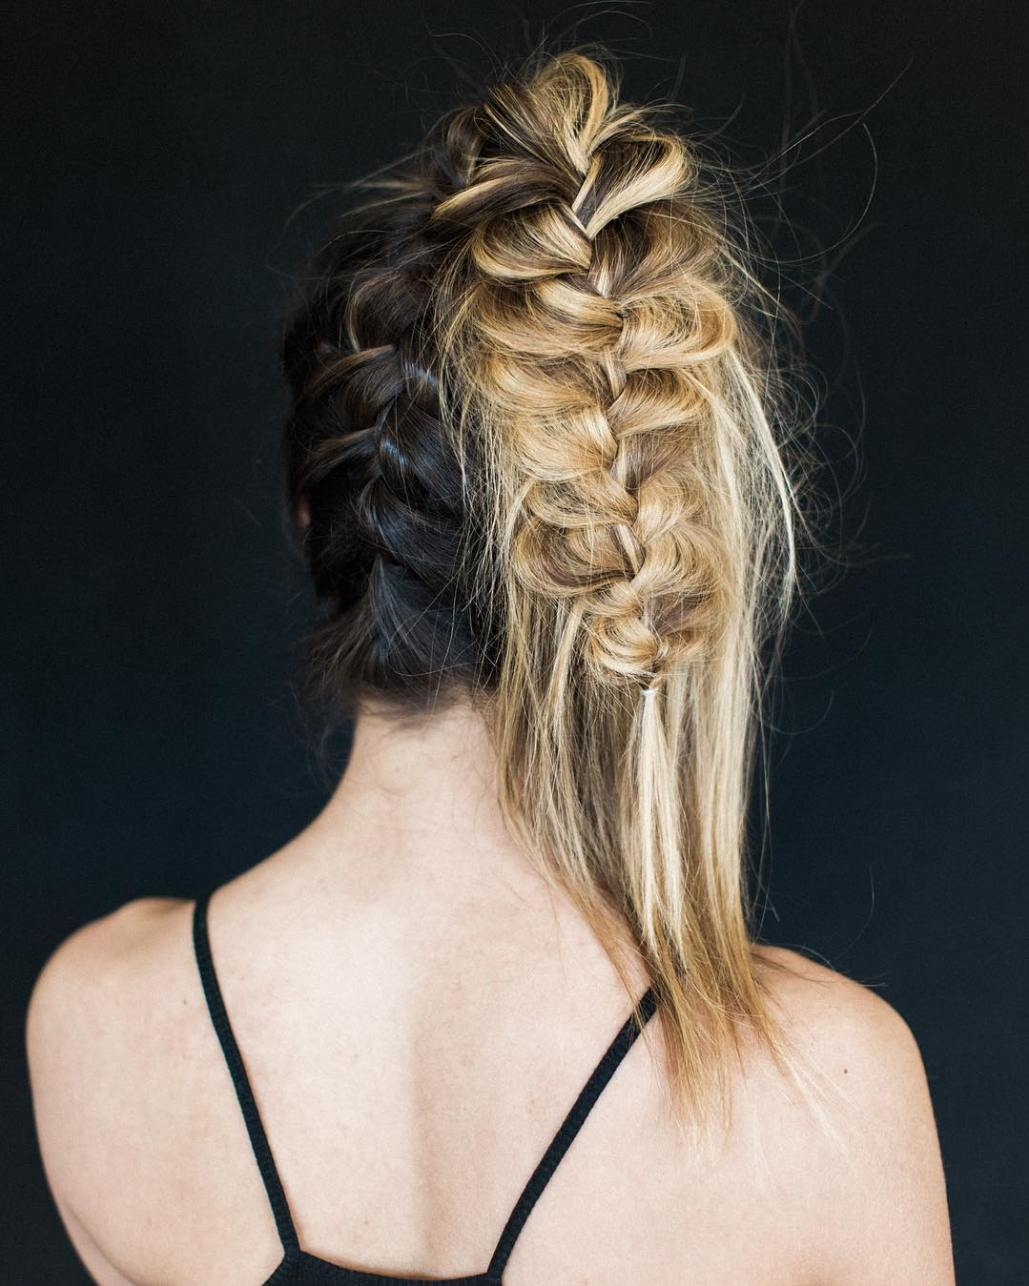 38 Perfectly Imperfect Messy Hairstyles for All Lengths